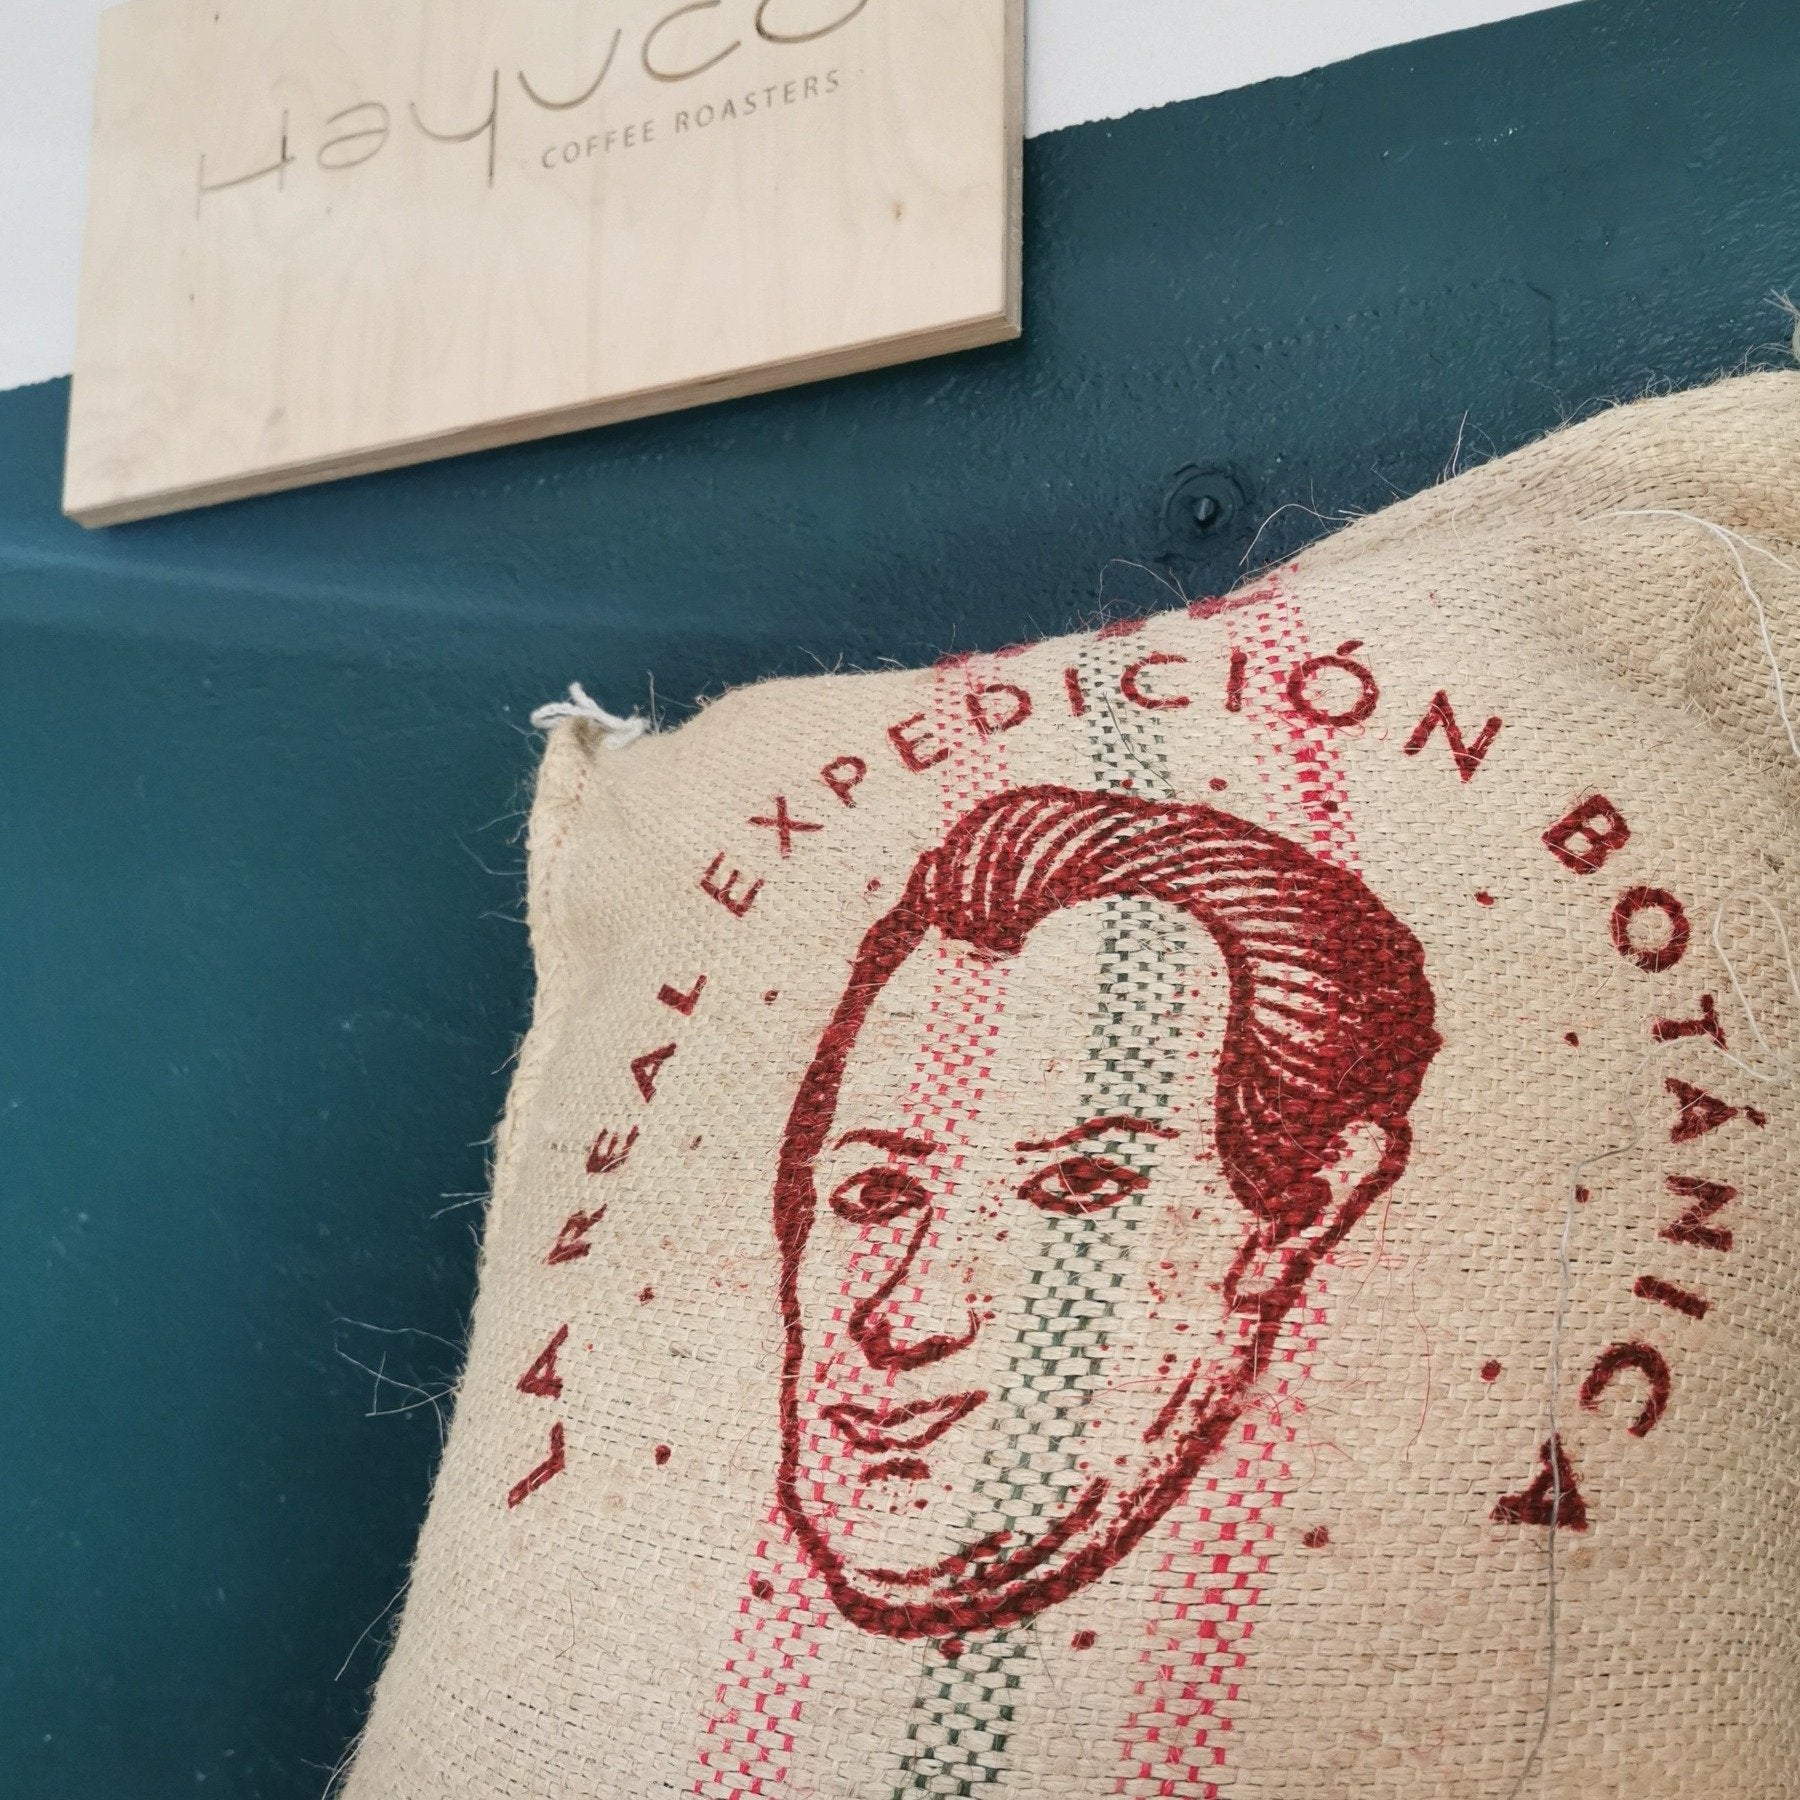 La Real Expedición Botánica Bundle 4 X 250gr / Colombie - Hayuco Coffee Roasters  - torréfacteur toulouse - Specialty Coffee Toulouse